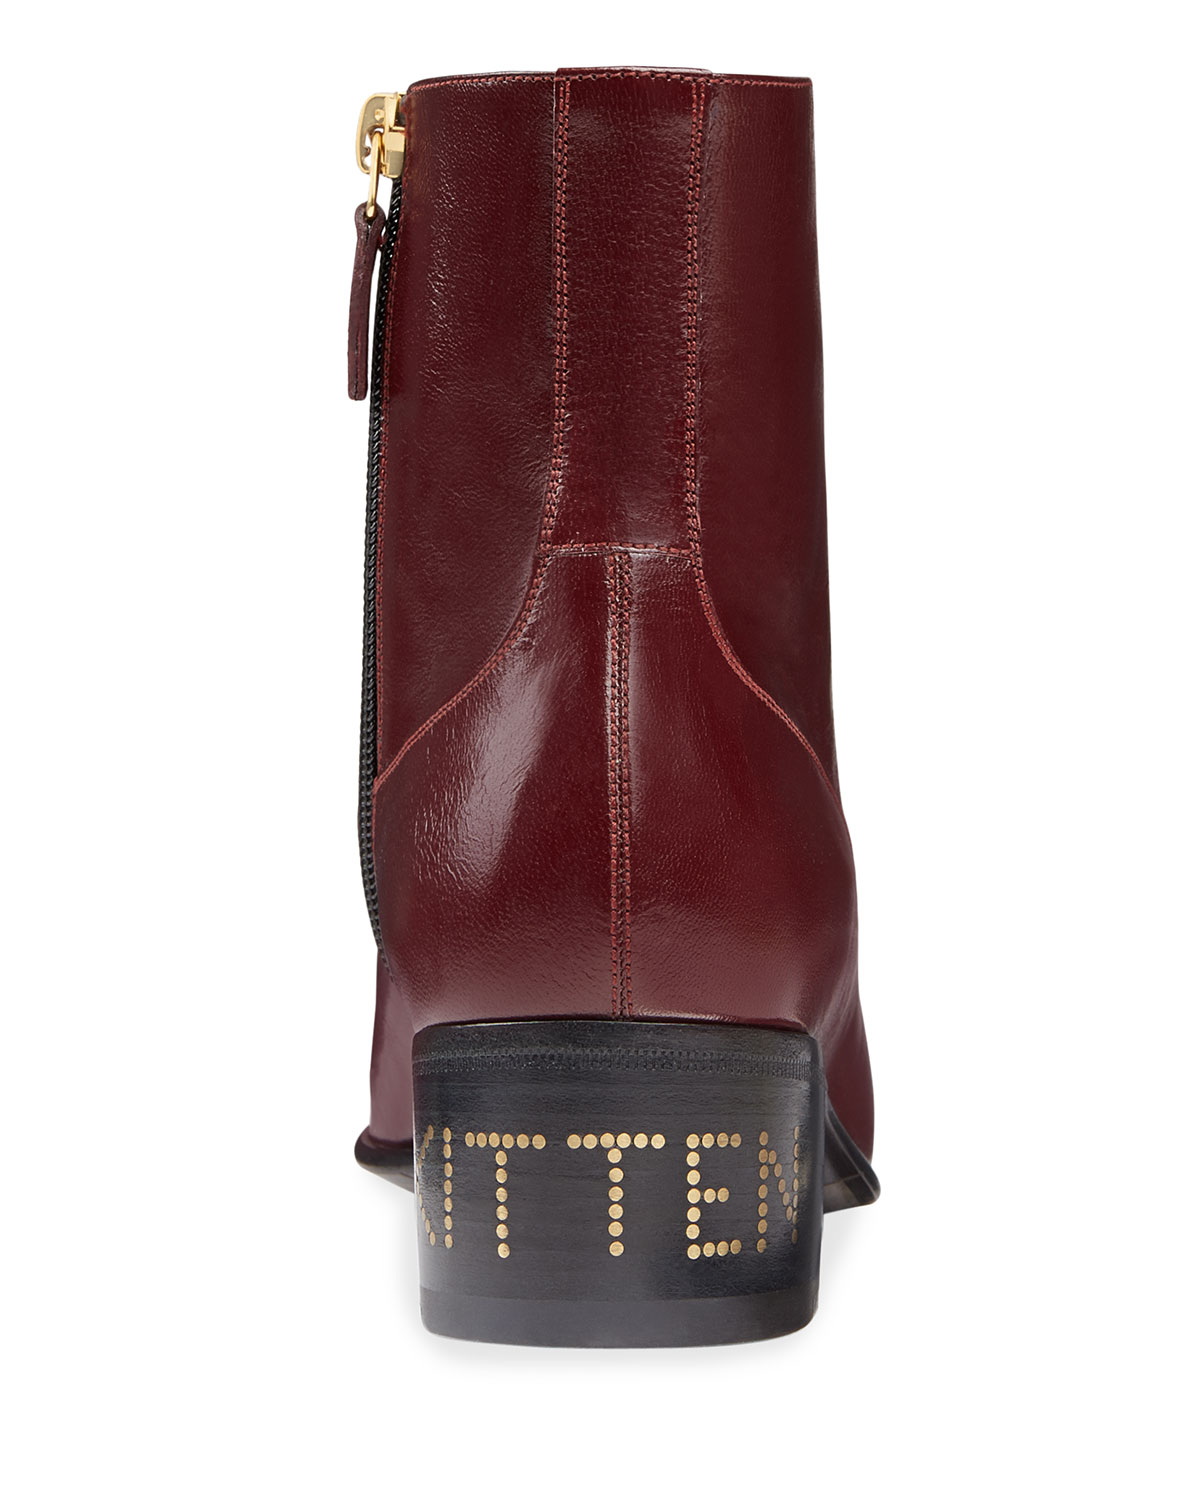 Gucci Boots Women's Leather Horsebit Chain Boots